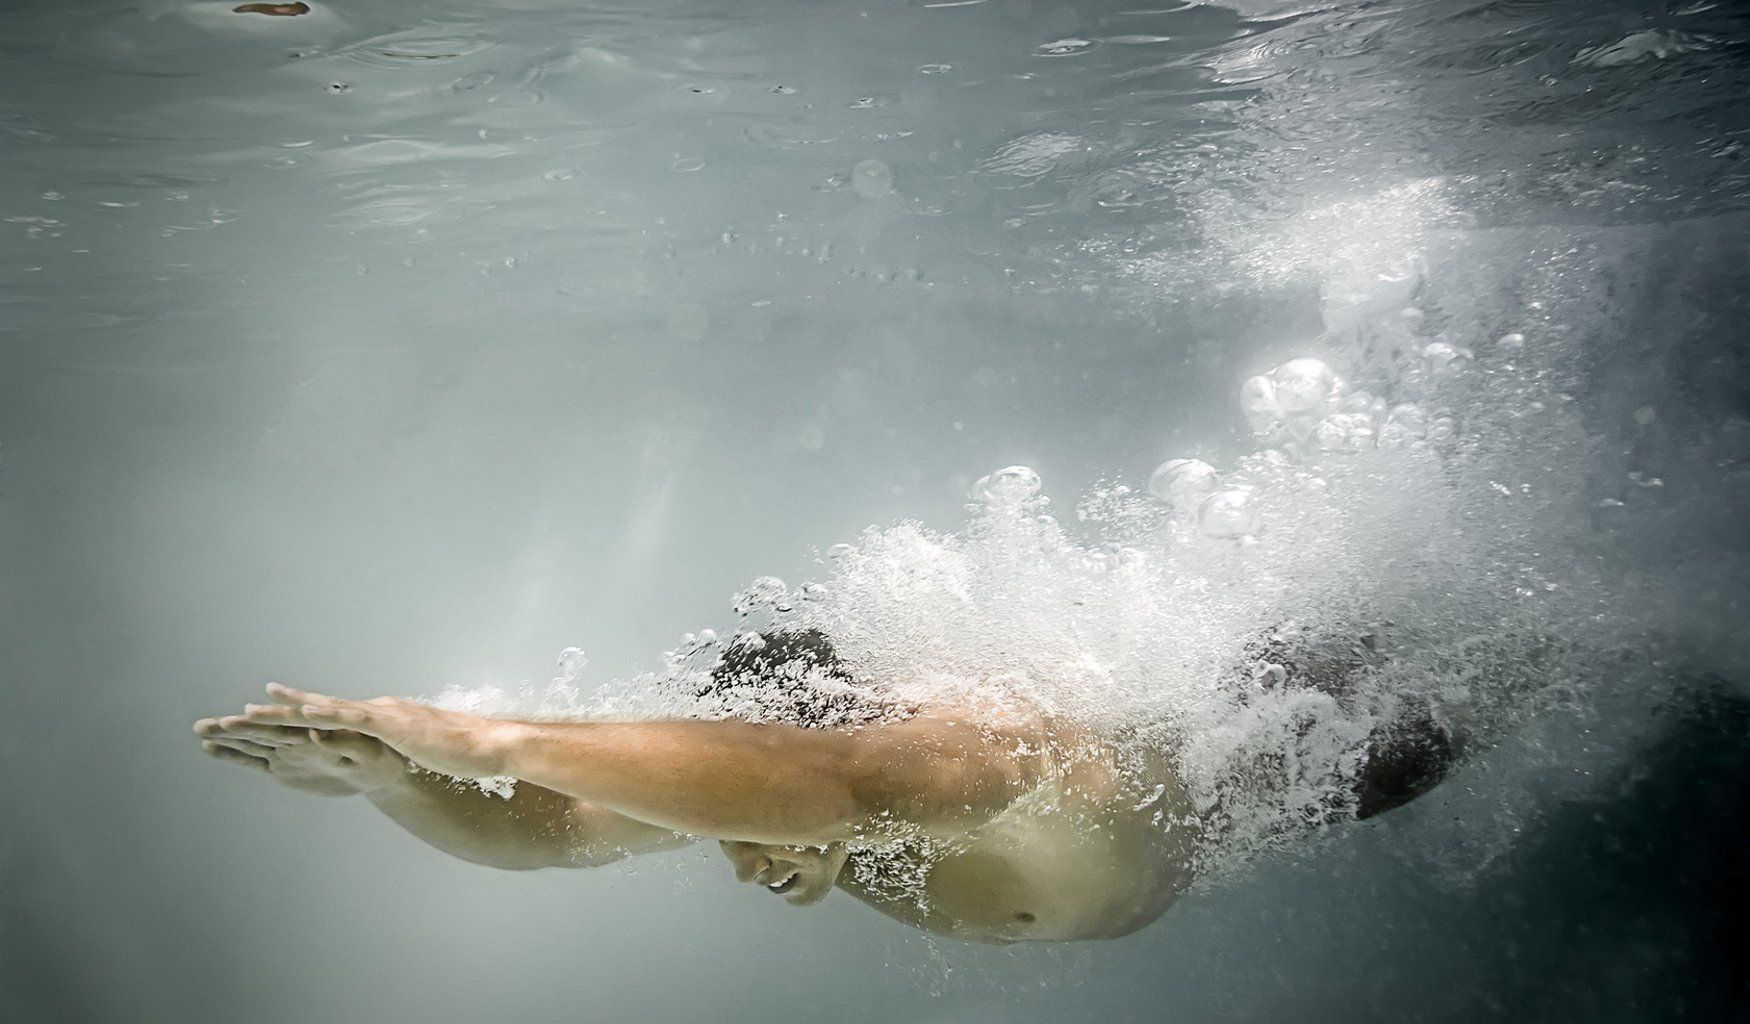 An image of a man diving in the pool with lots of air bubbles